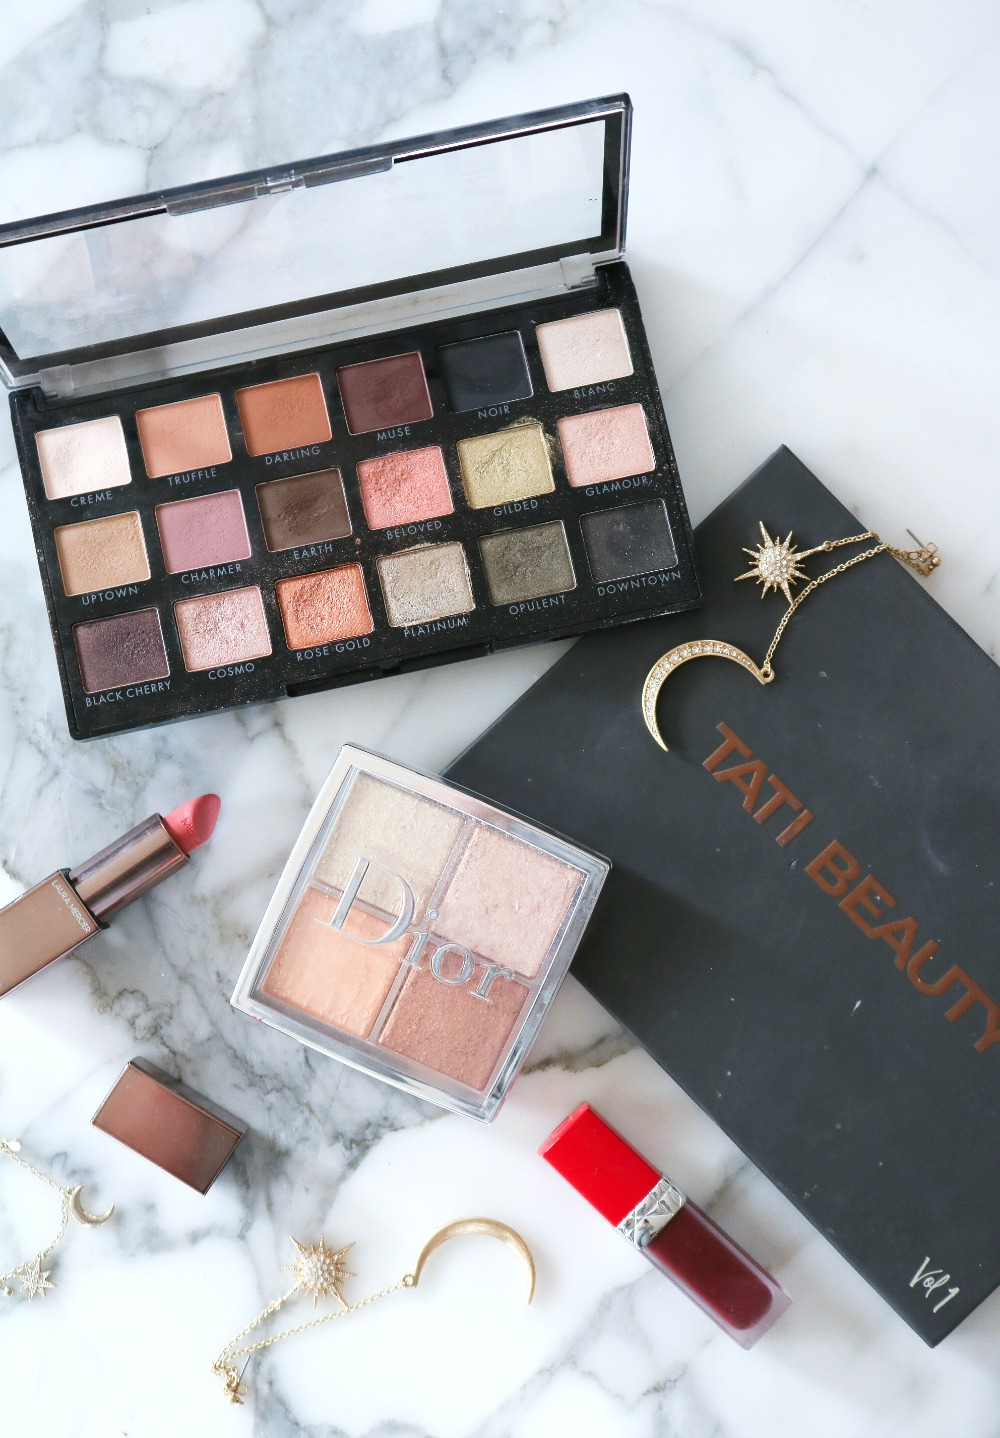 Best 2019 Makeup Releases I ELF, Dior, Tati Beauty and Laura Mercier #Makeup #BeautyBlog